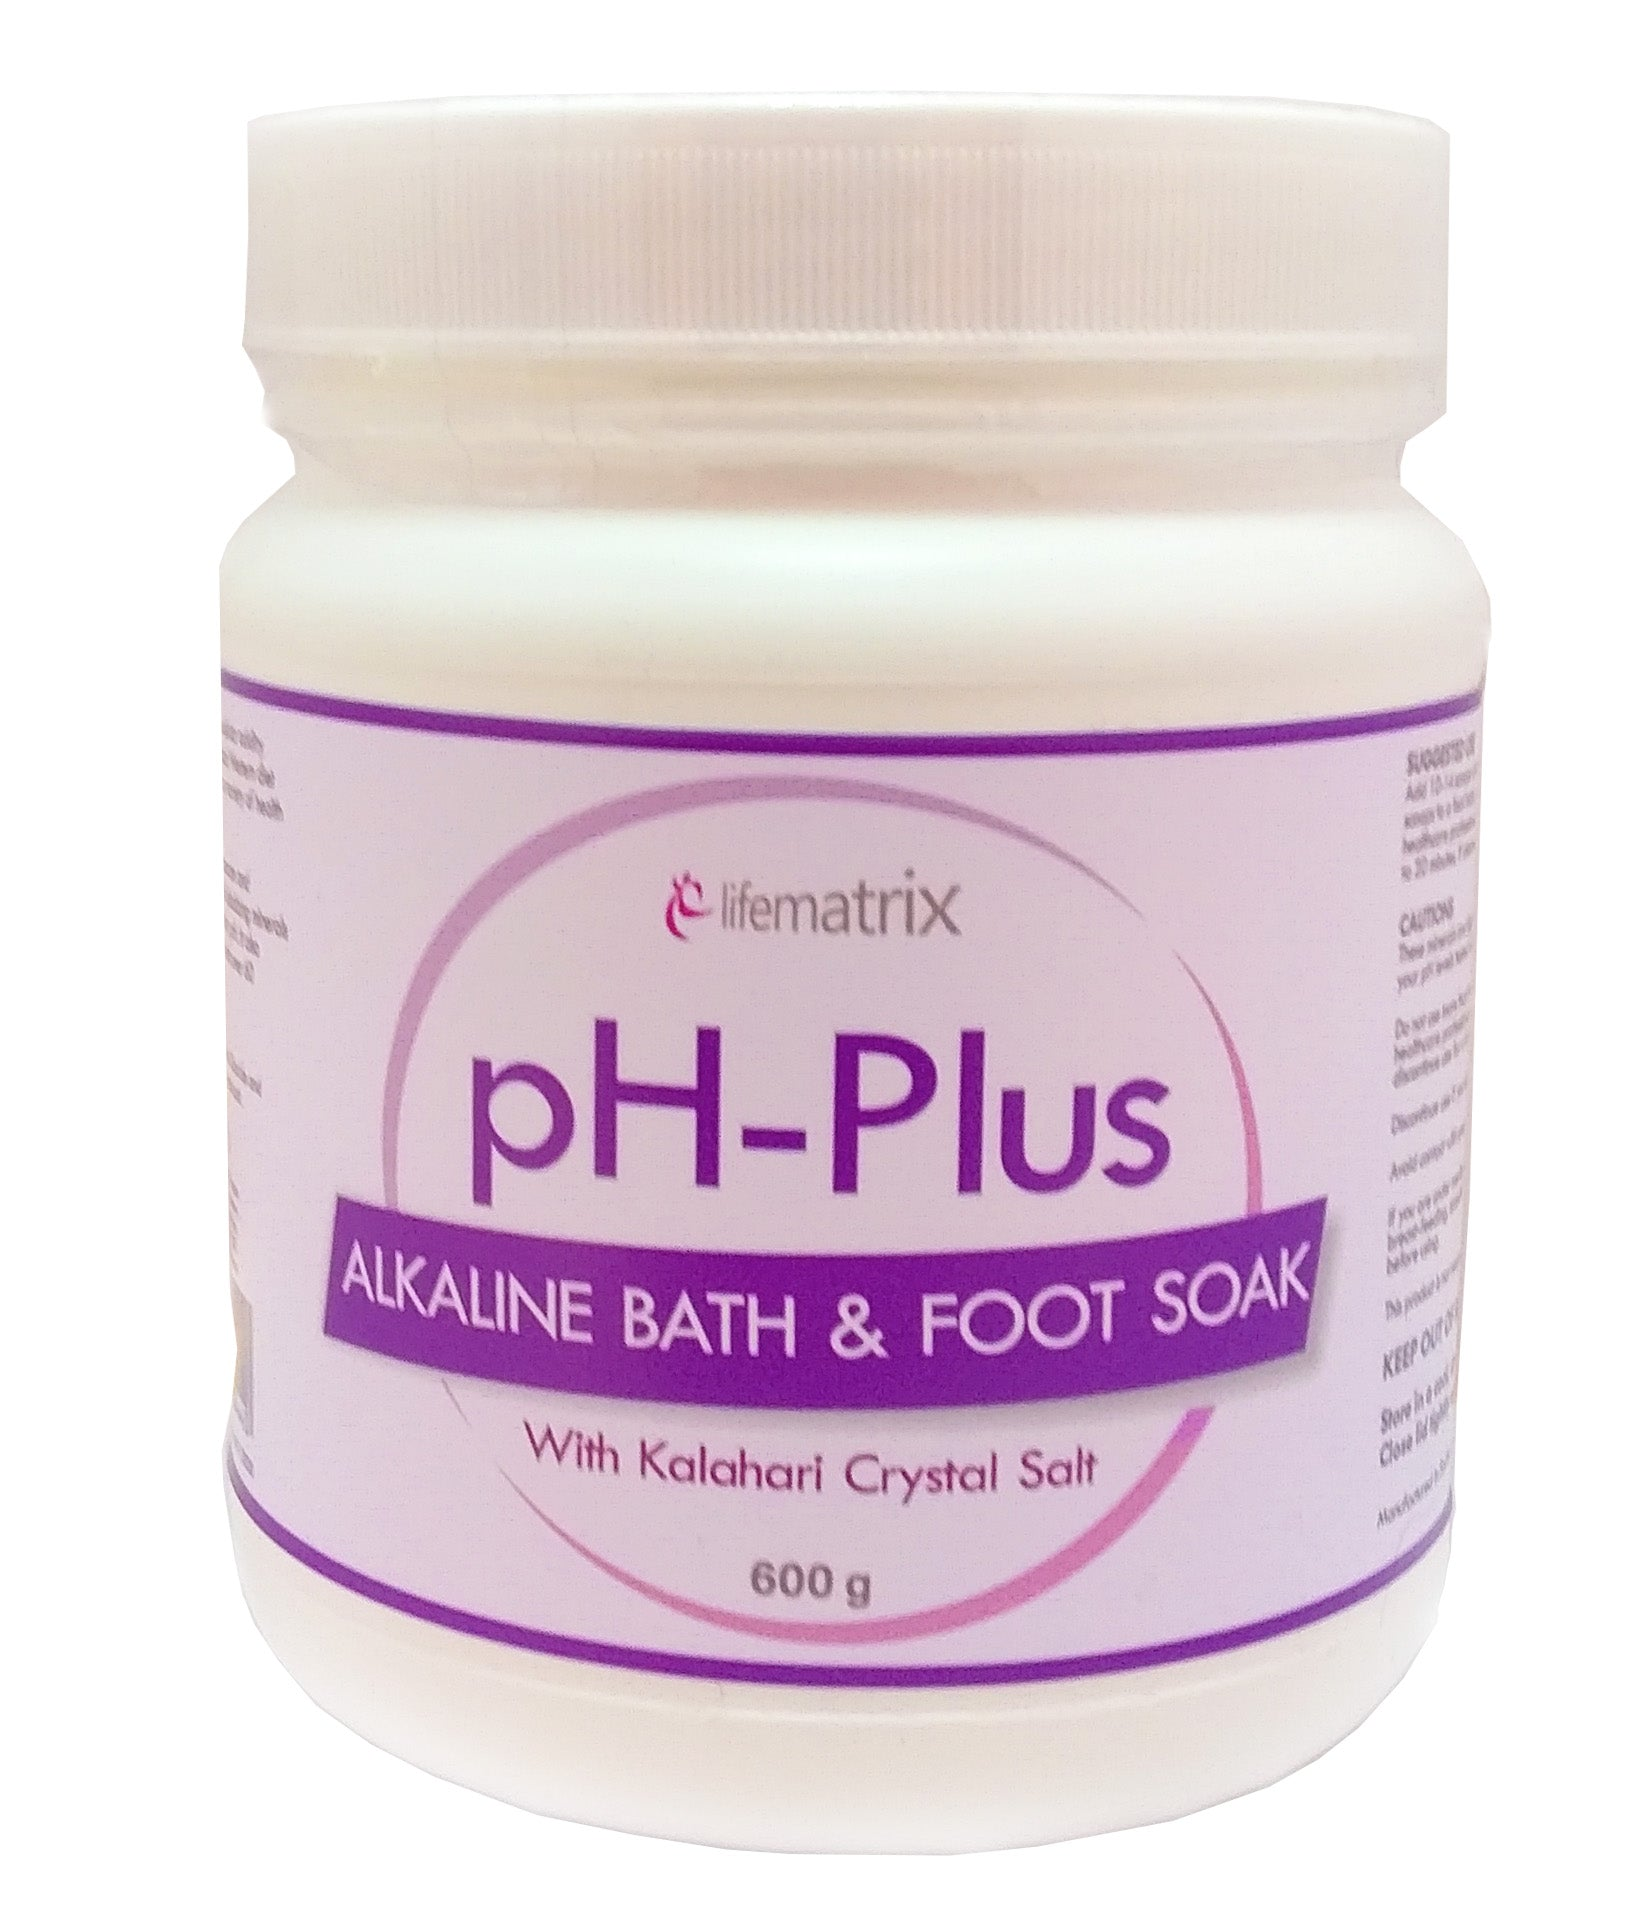 PH Plus | Alkaline Bath & Foot Soak 600G